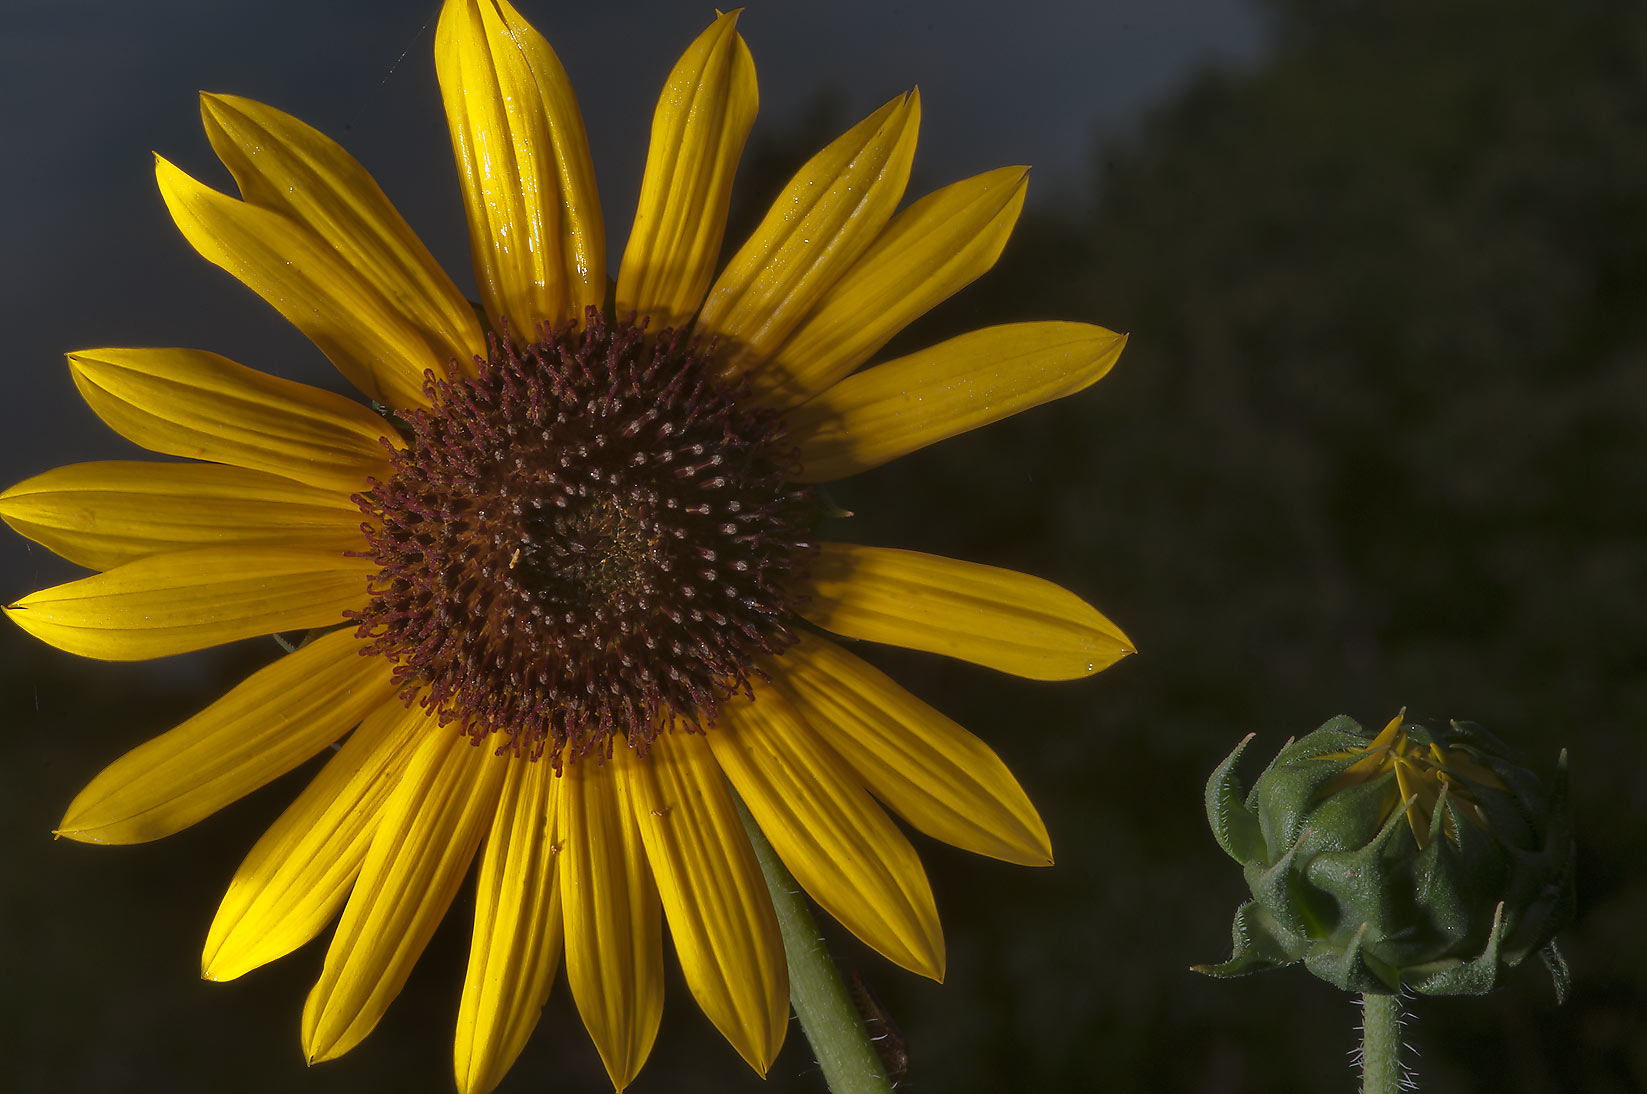 Common sunflower (Helianthus annuus) near a pond...State Historic Site. Washington, Texas